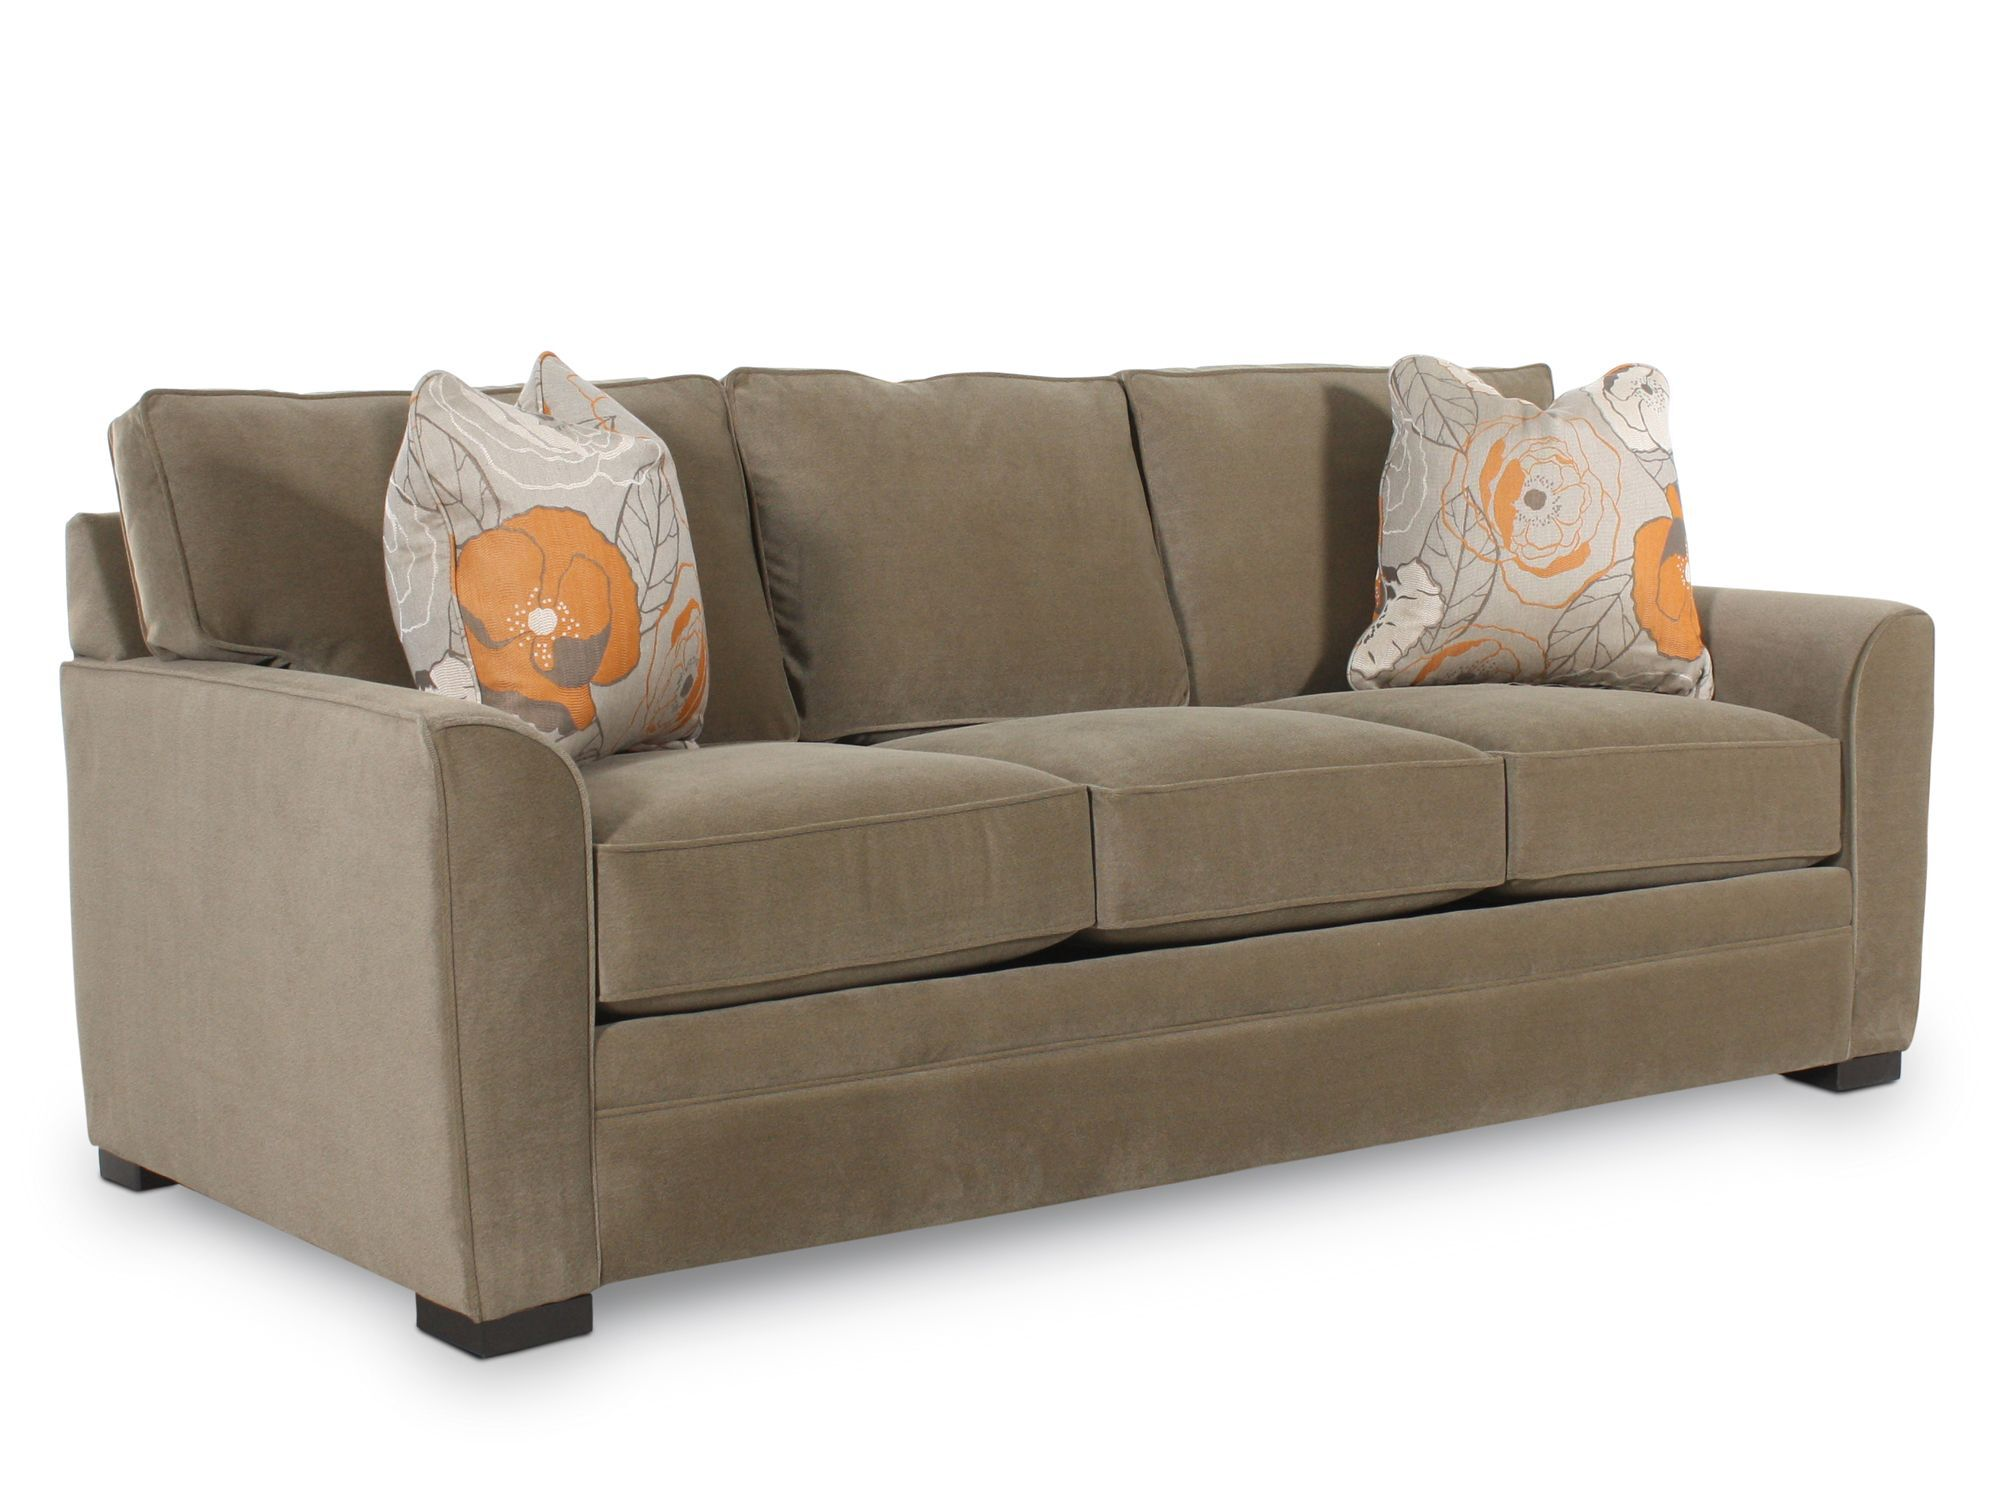 Traditional Queen Sleeper Sofa in Brown   Mathis Brothers ...